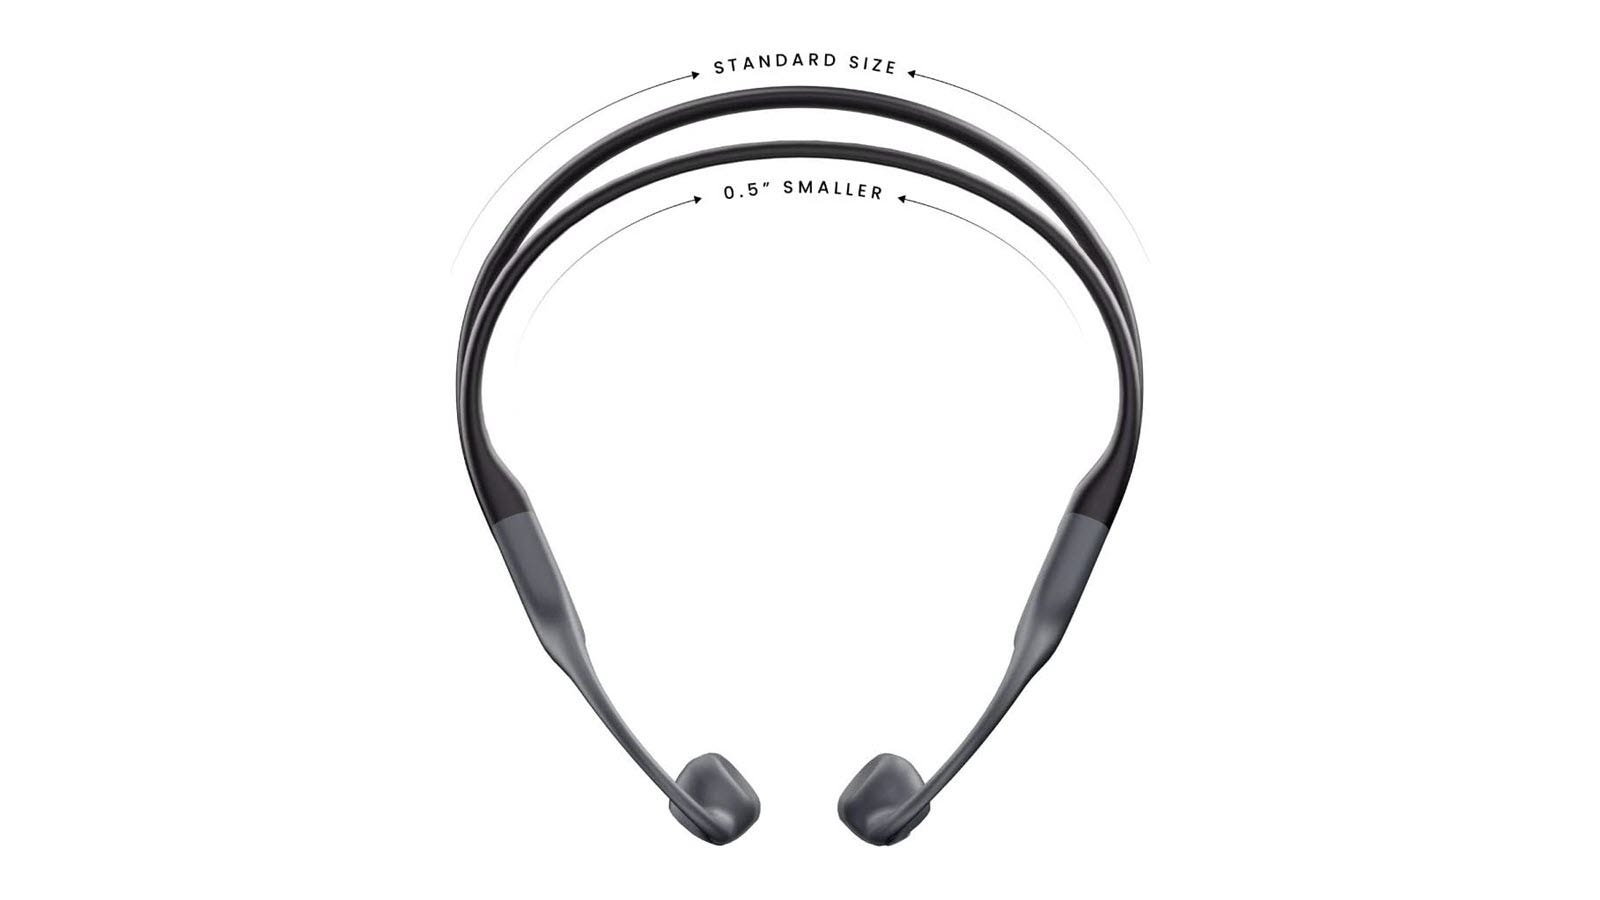 A side by side comparison of the AfterShokz Aeropex and Aeropex Mini